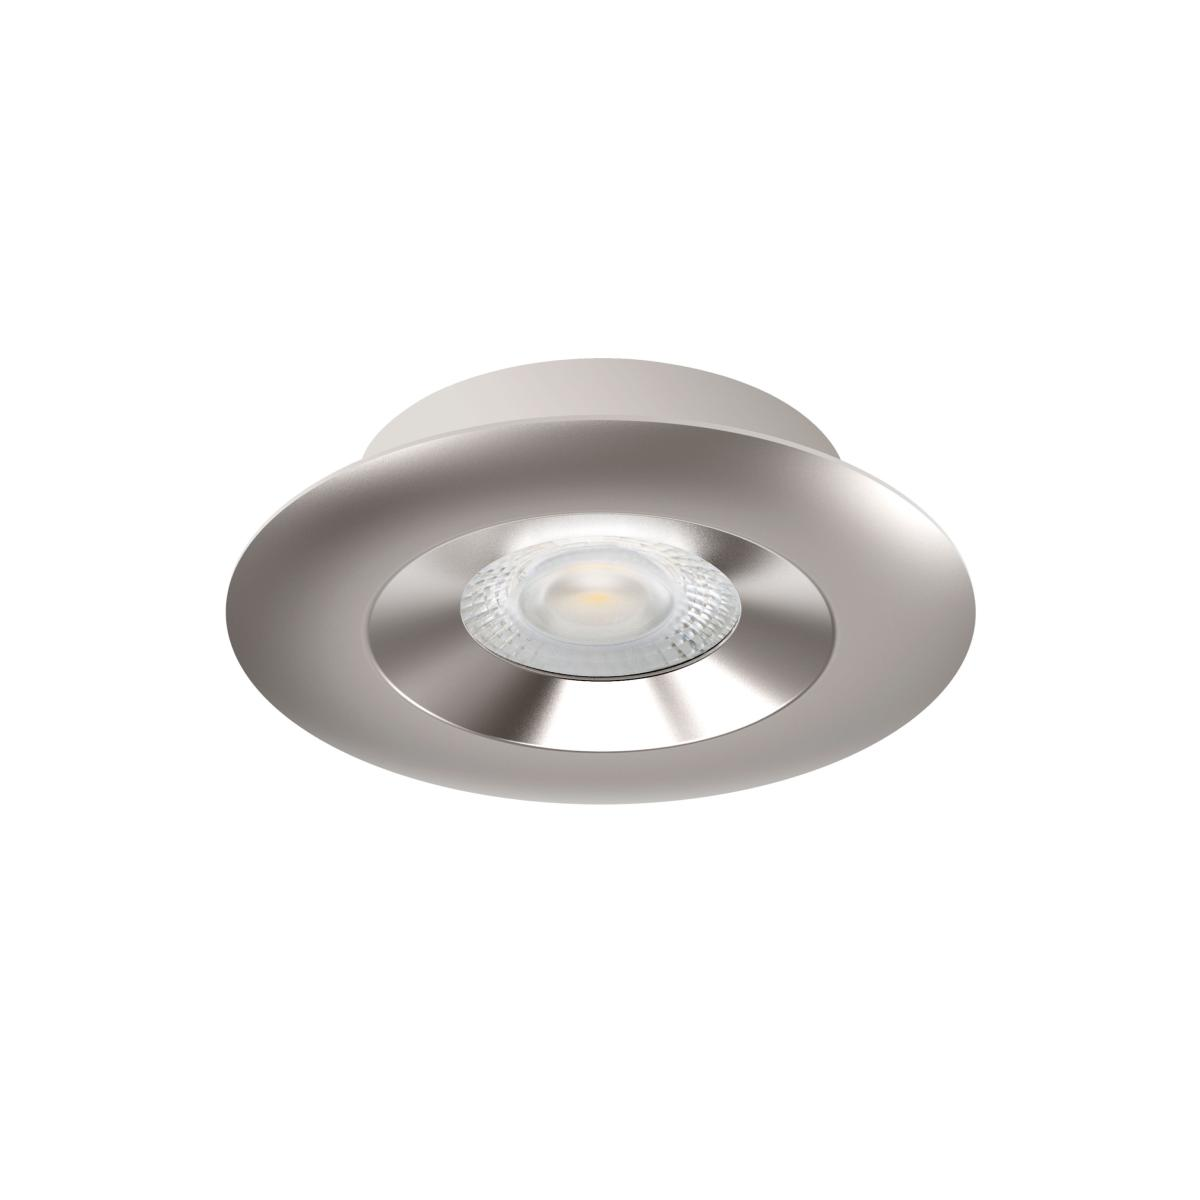 spot led extra plat dimmable recouvrable isolant aric 5w 36 220v aspen 50748